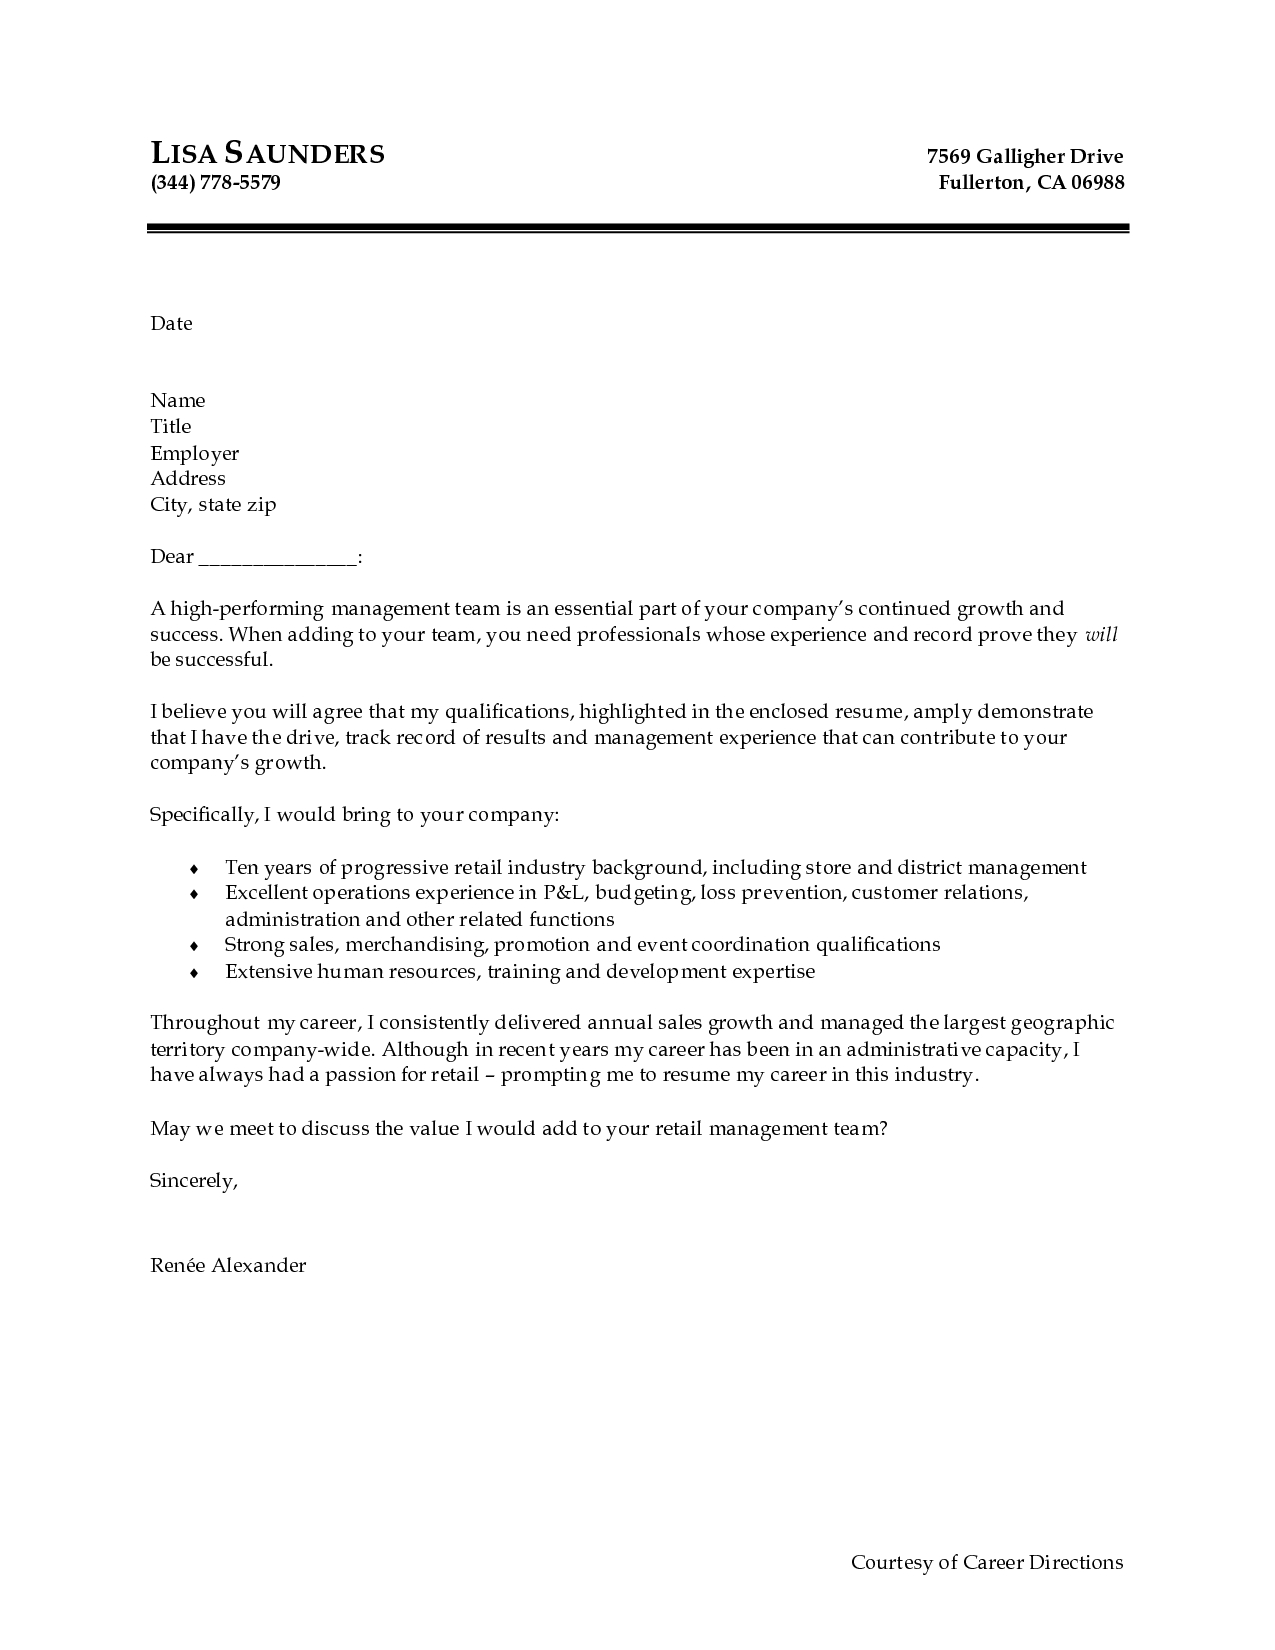 free cover letter templates for resumes - Resume Cover Letter Template Free